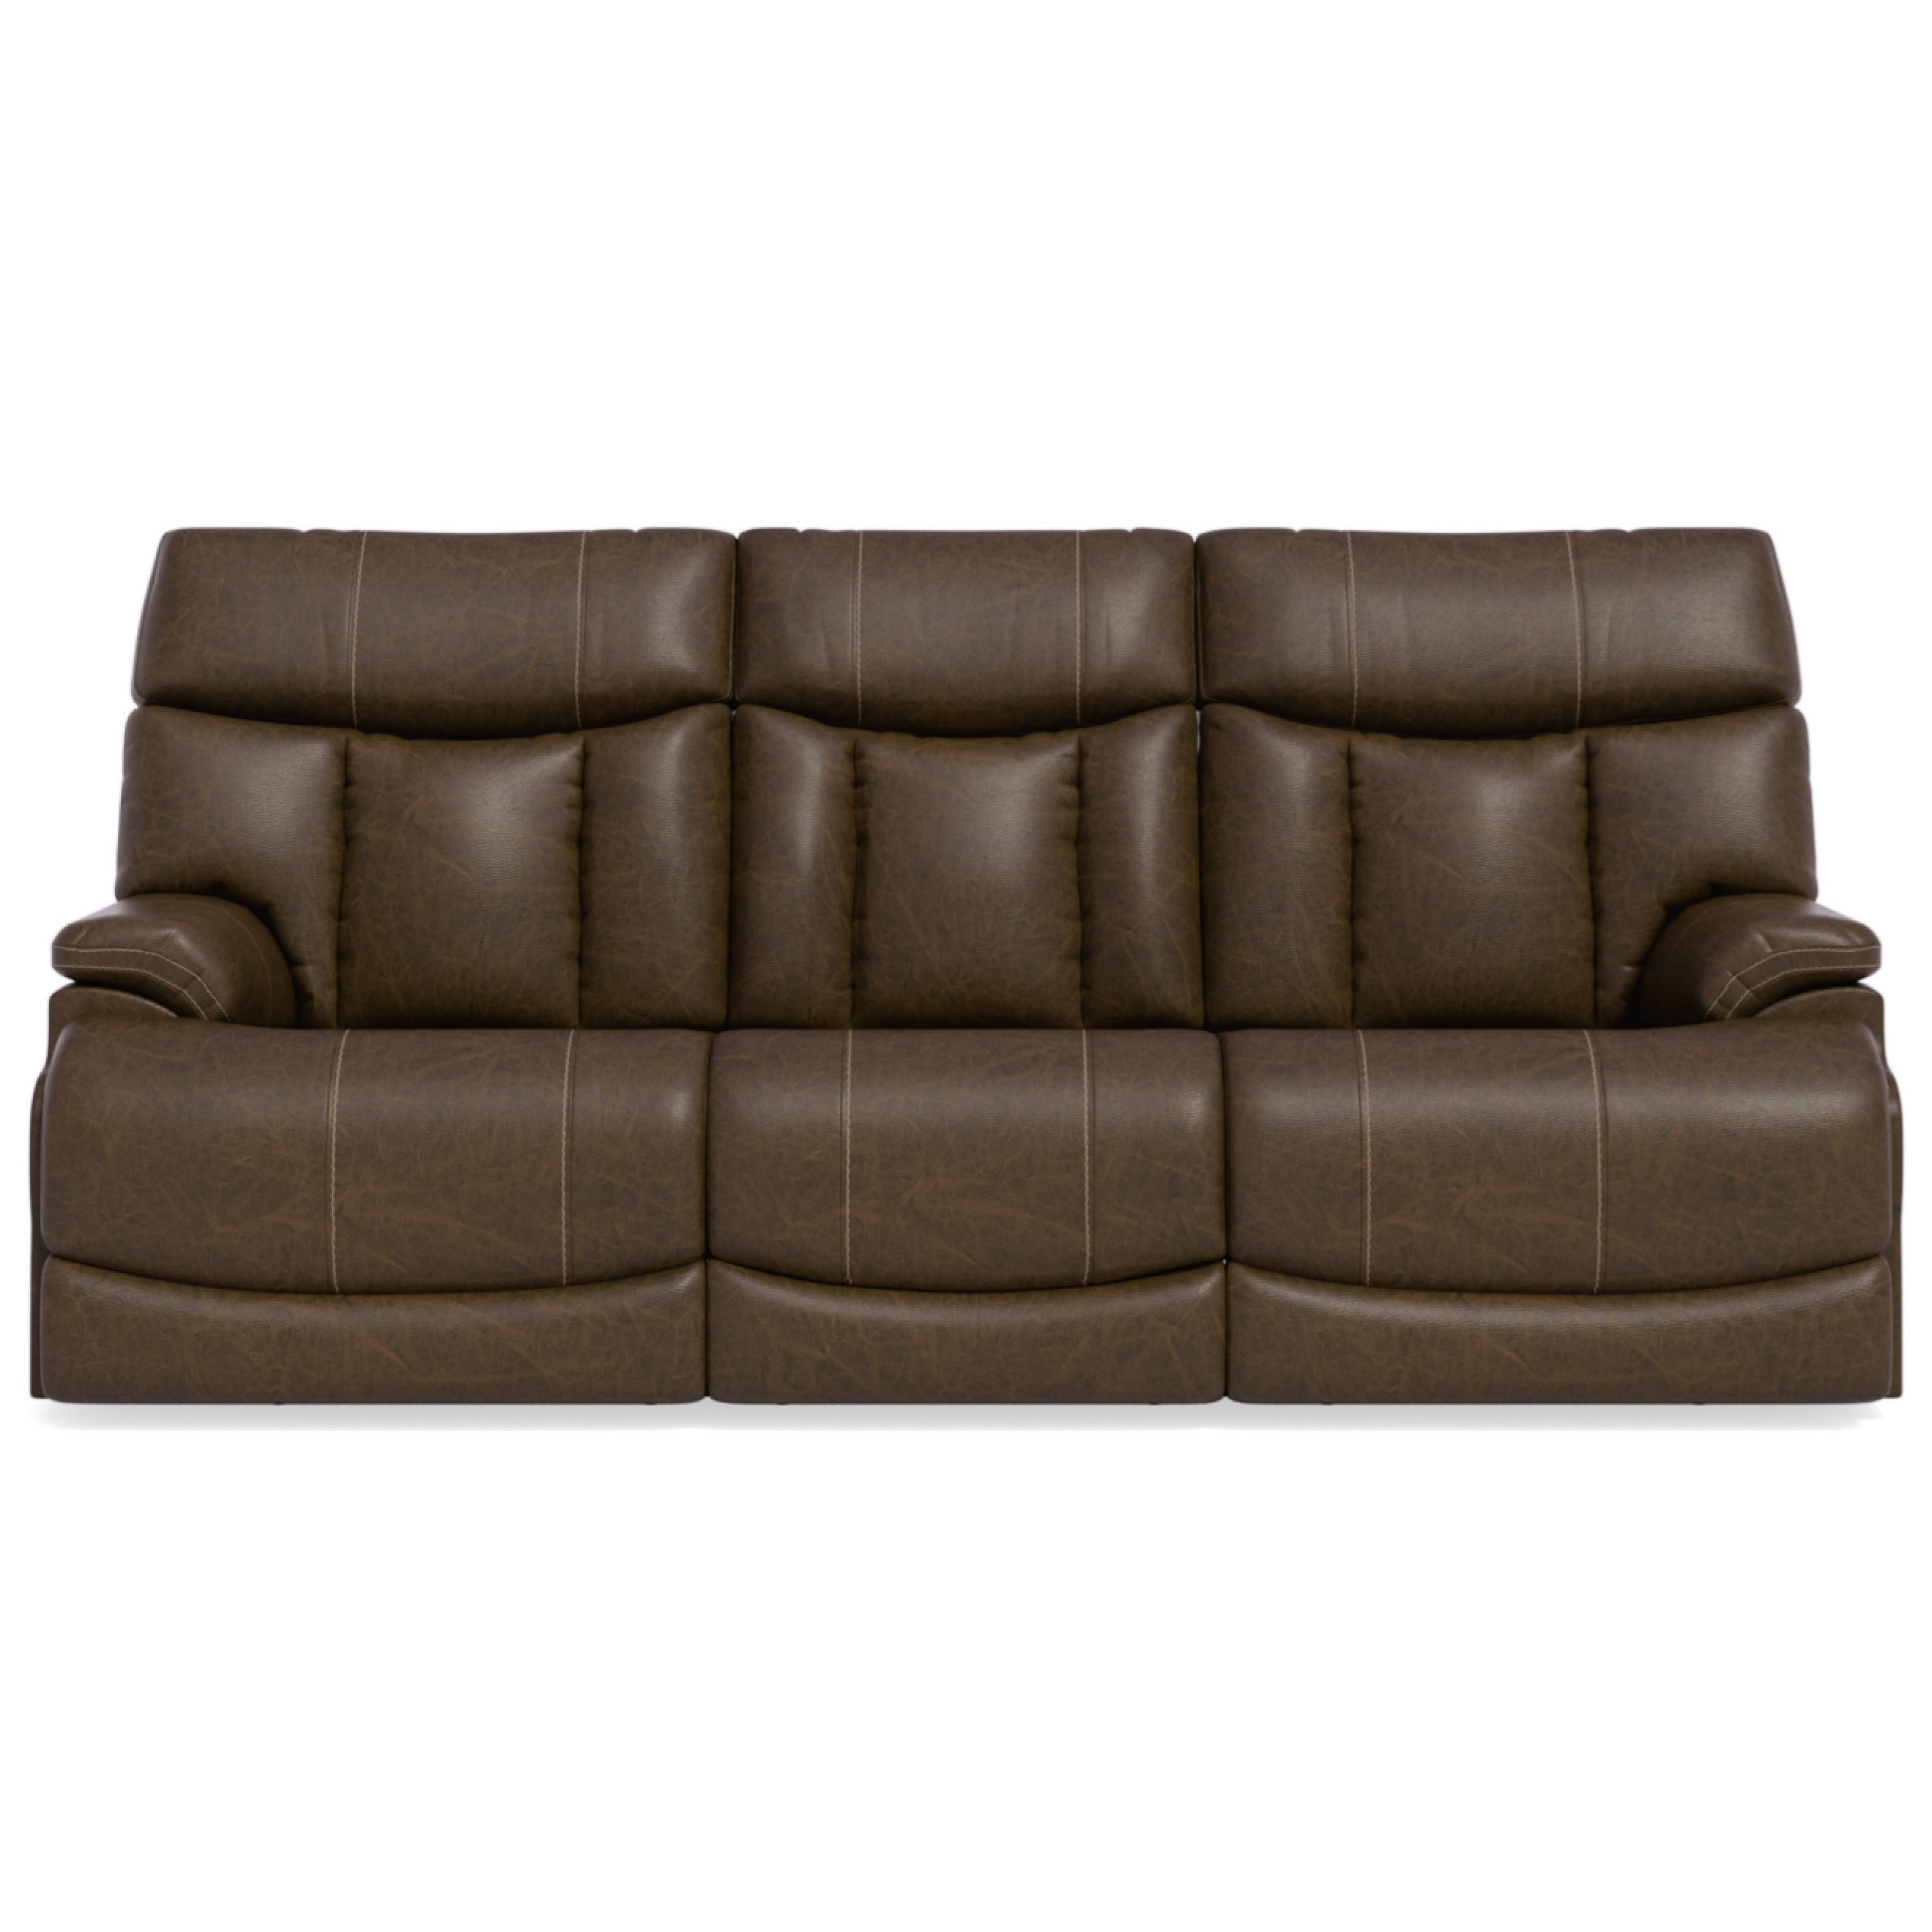 Latitudes-Clive Reclining Sofa by Flexsteel at Darvin Furniture